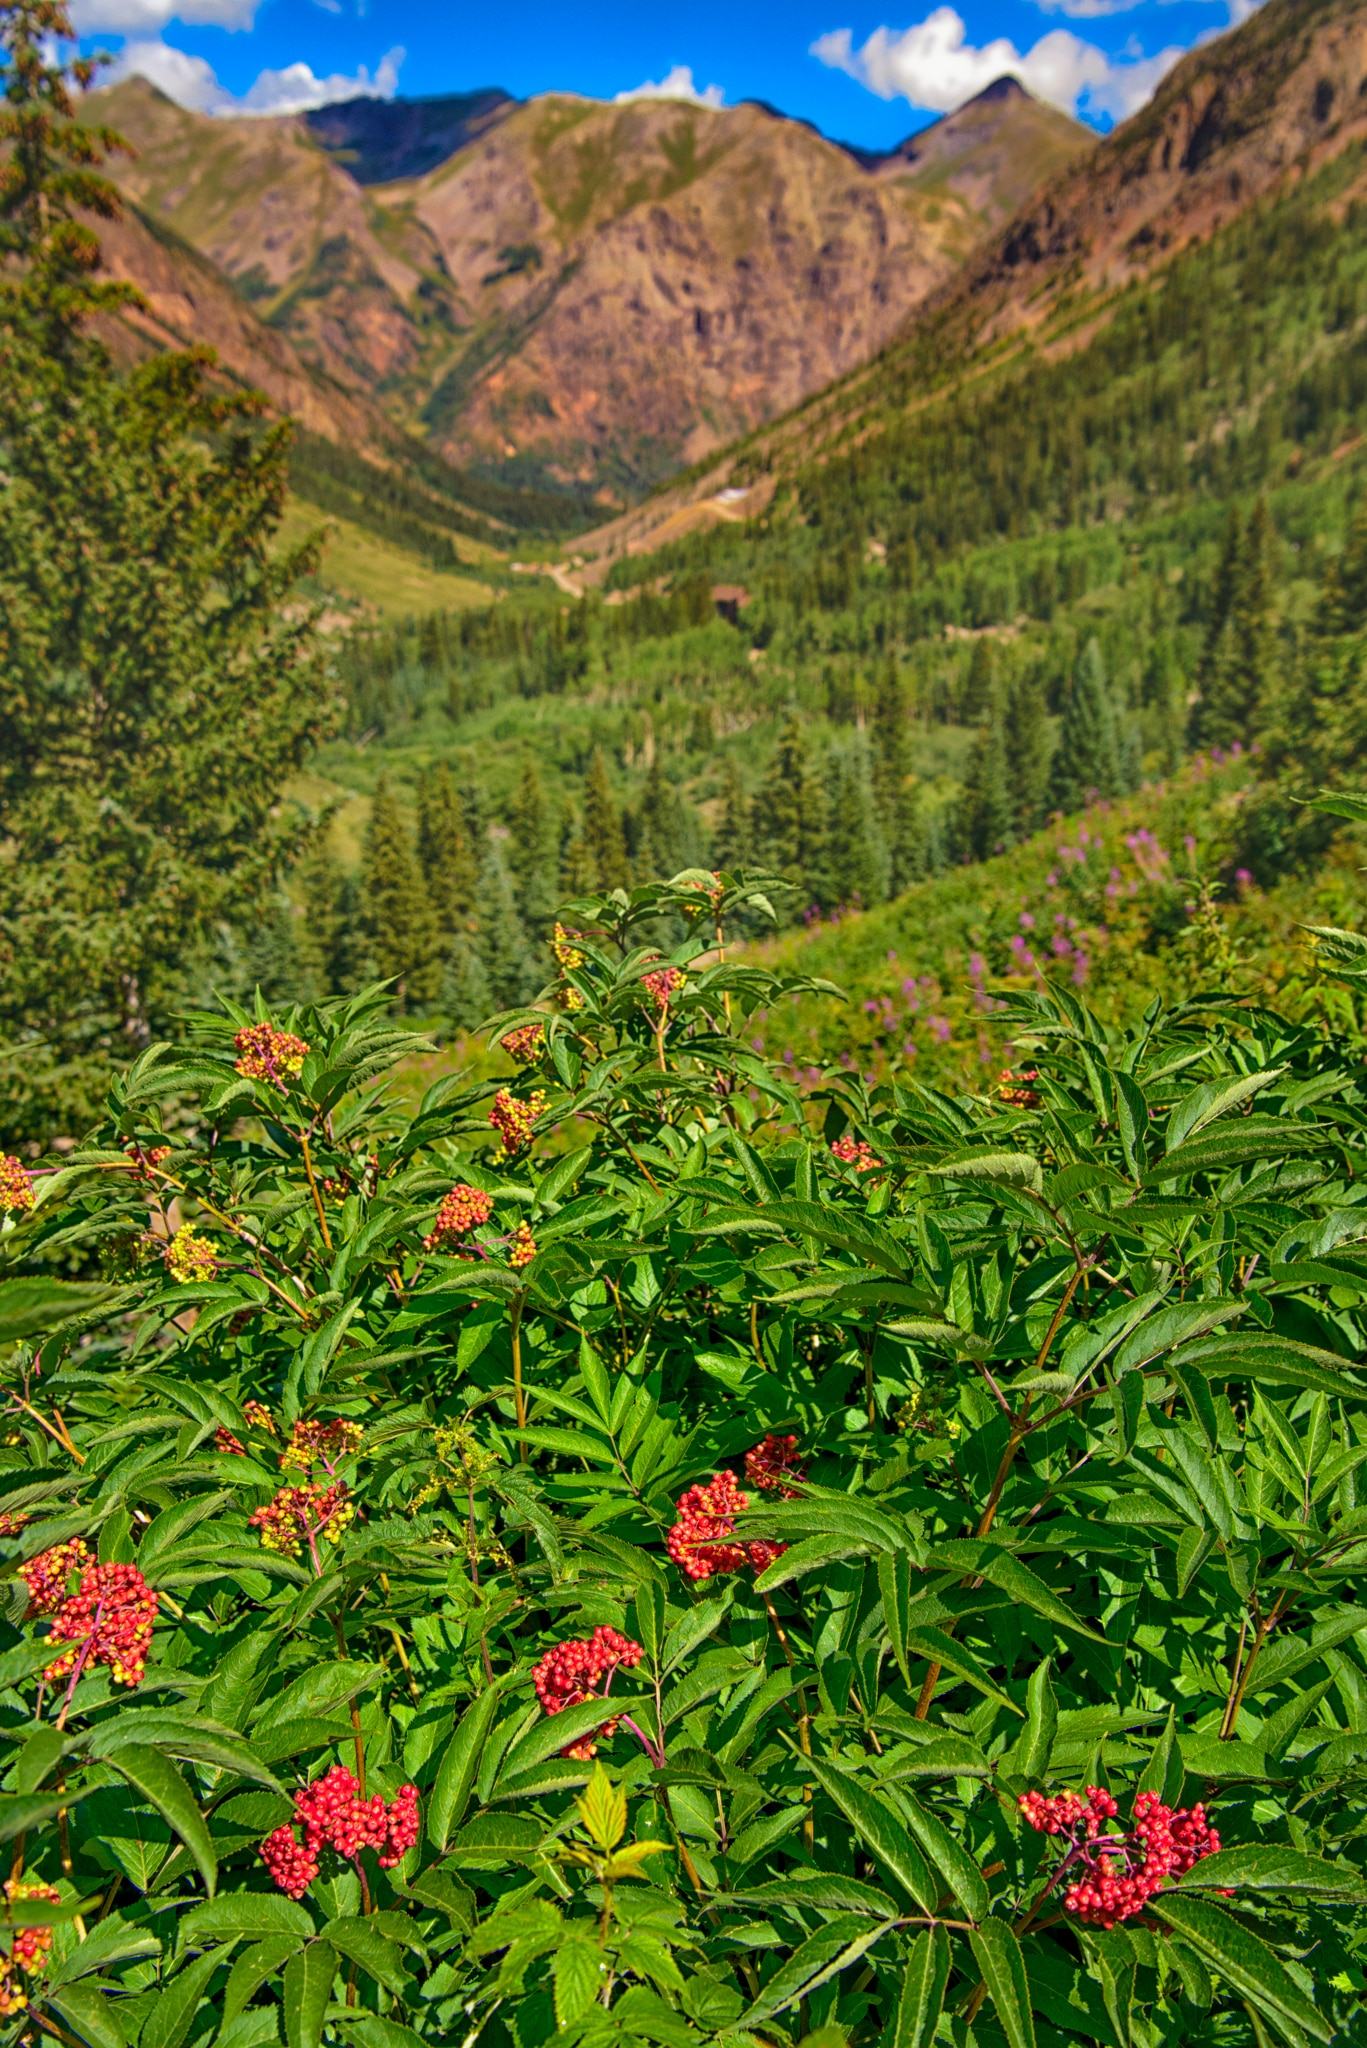 Scattered patches of Red-Berried Elder grow in the meadows along Stony Pass Road below treeline.